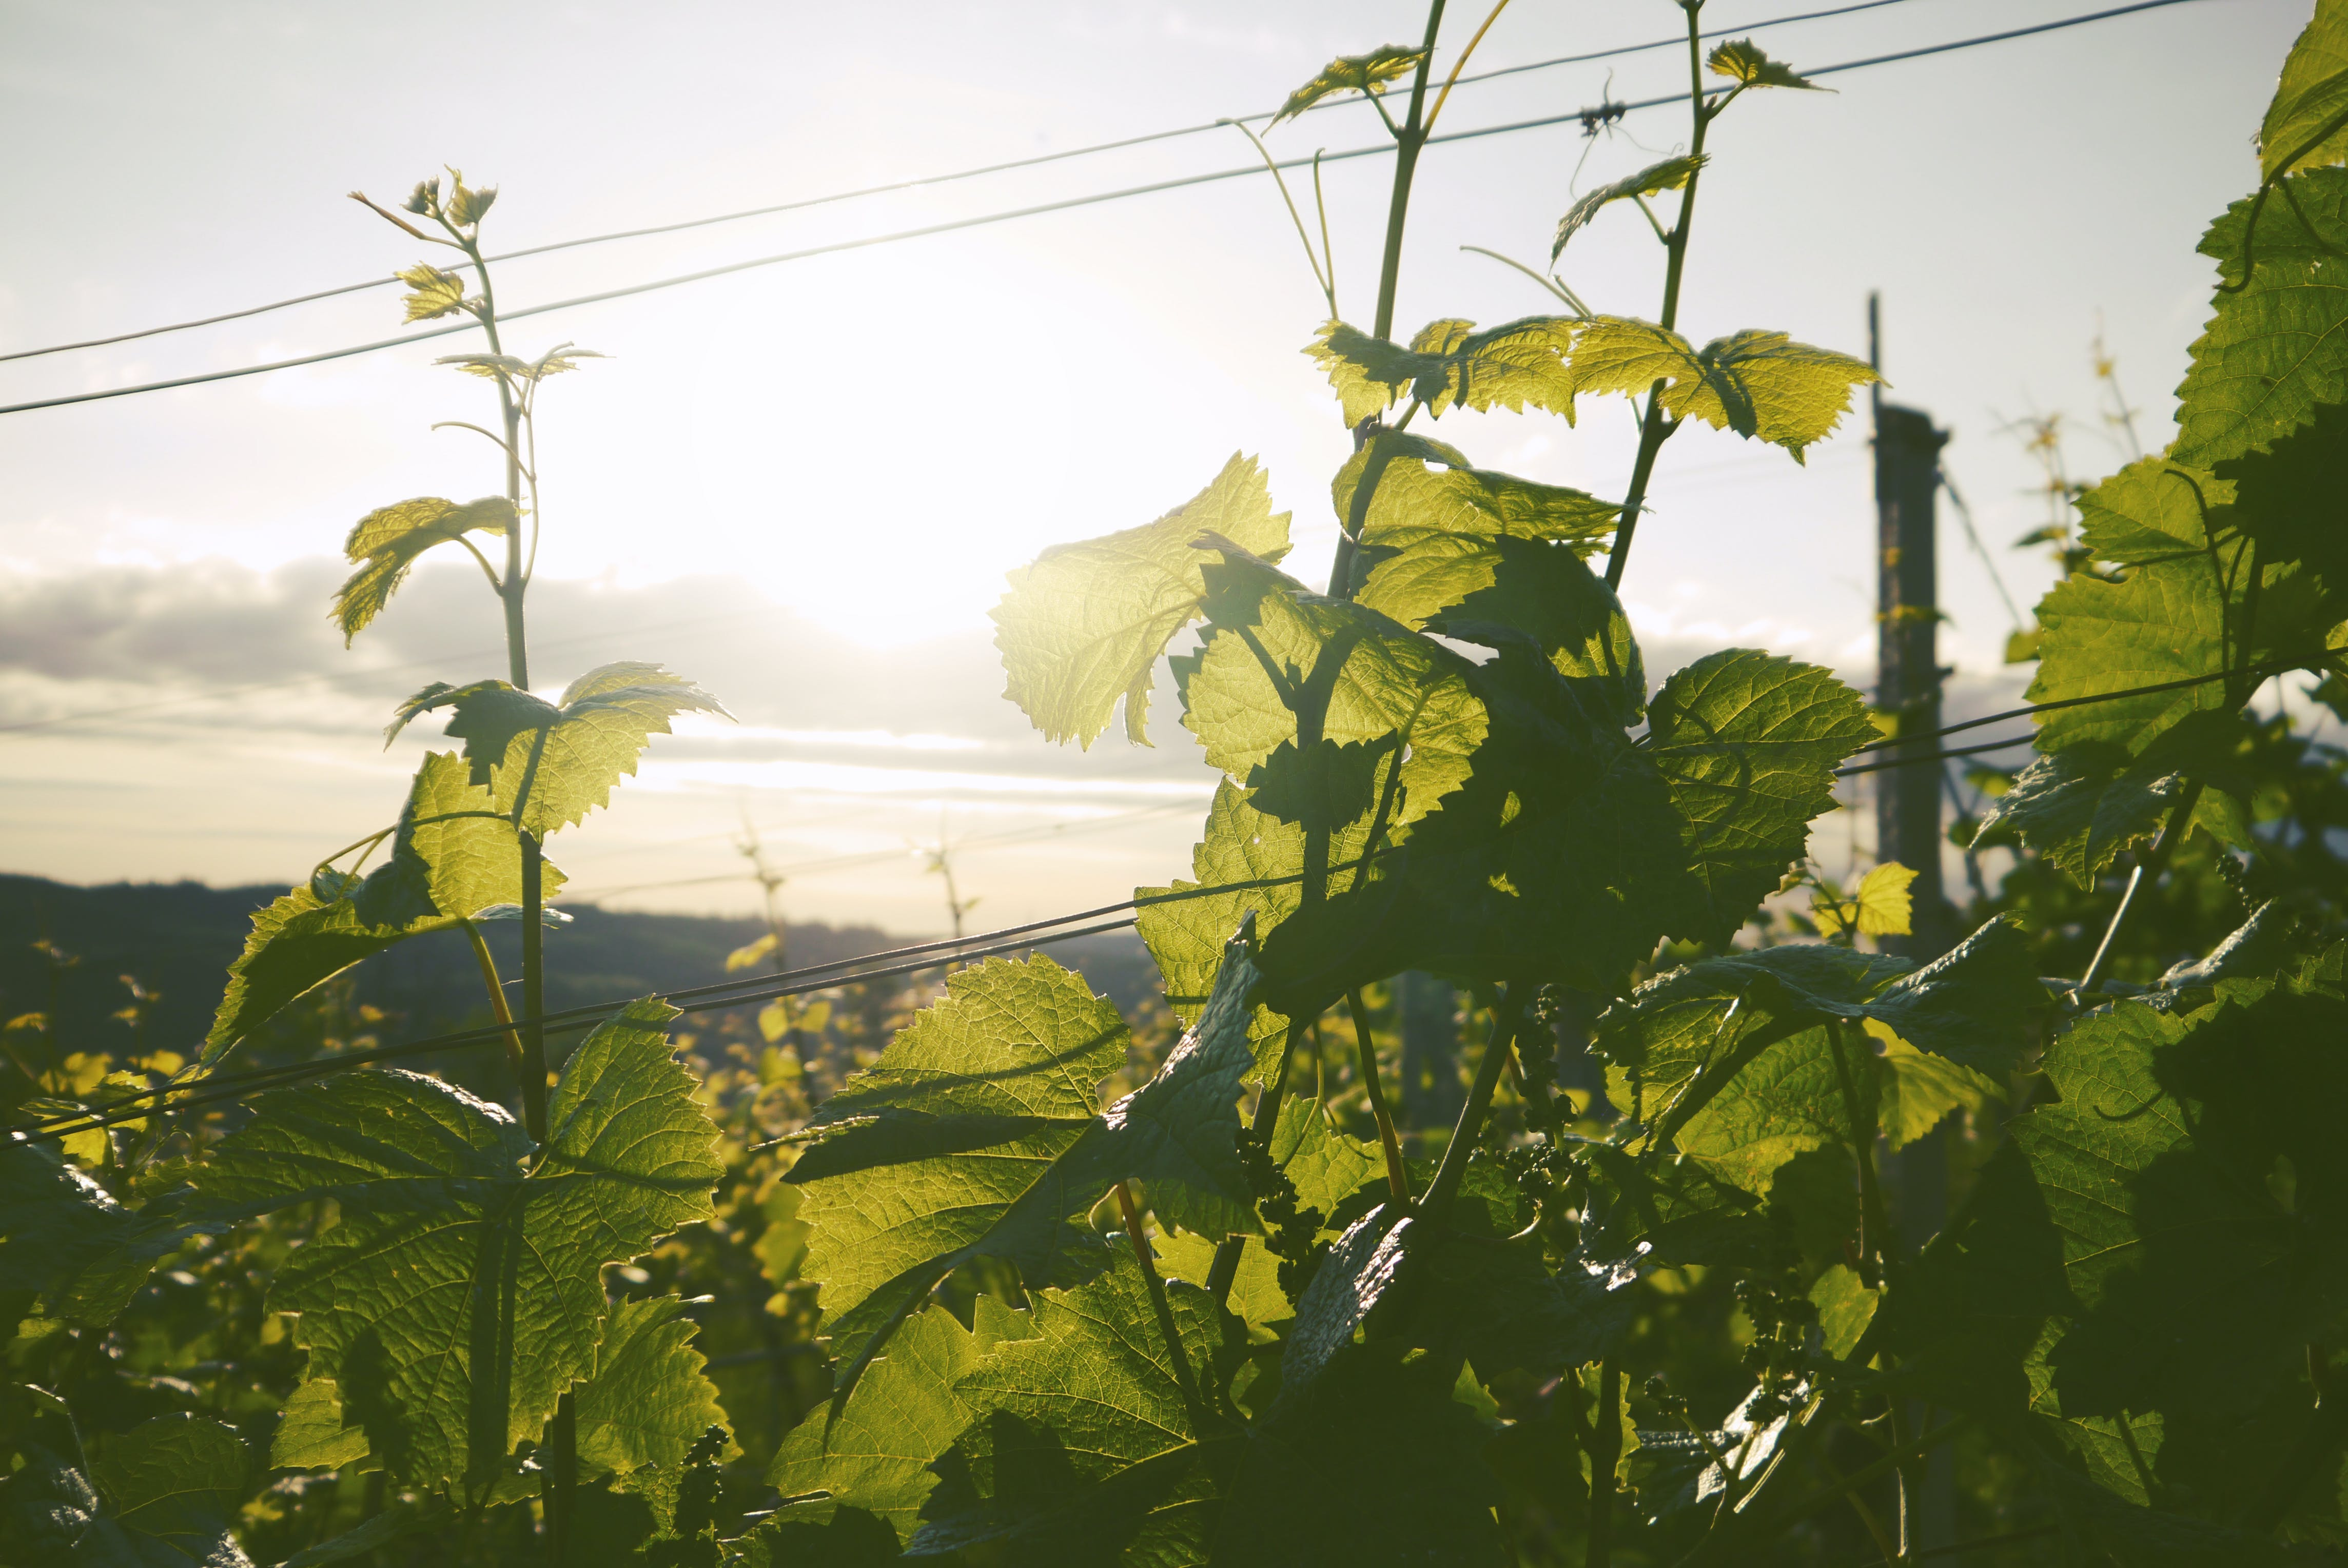 Green Leafed Plant during Golden Hour